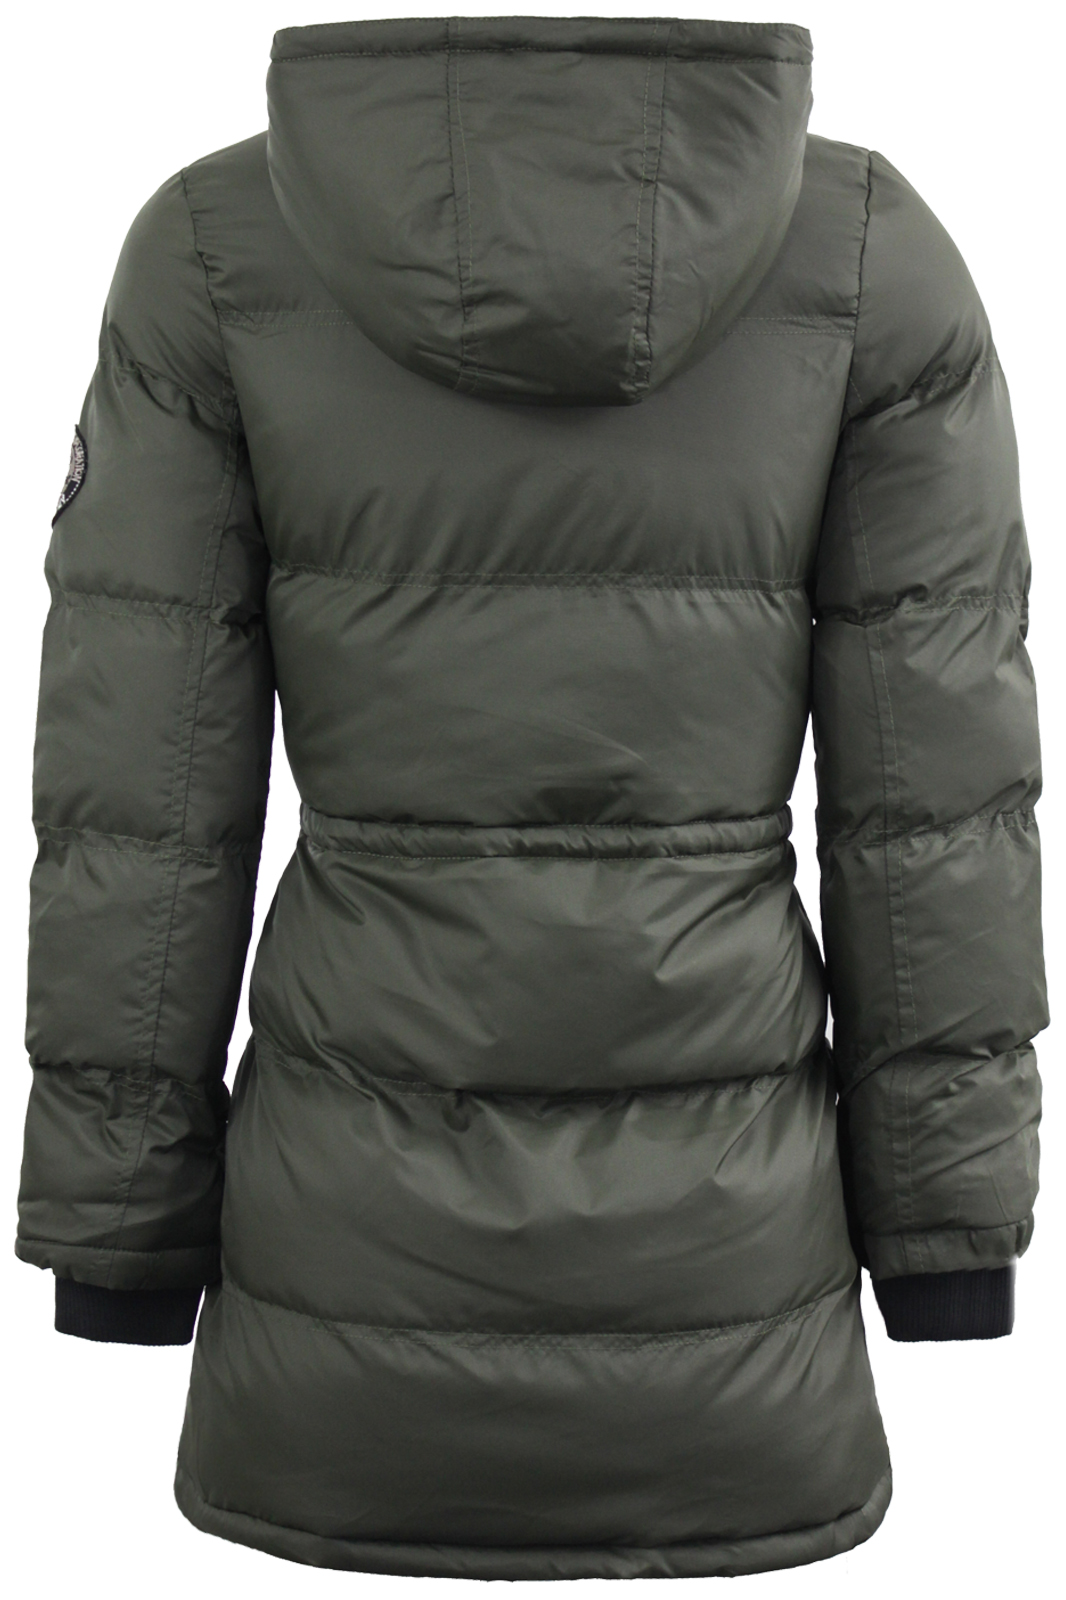 Womens Brave Soul Padded Quilted Jacket Warm Winter Parker Parka ... : brave soul quilted jacket - Adamdwight.com